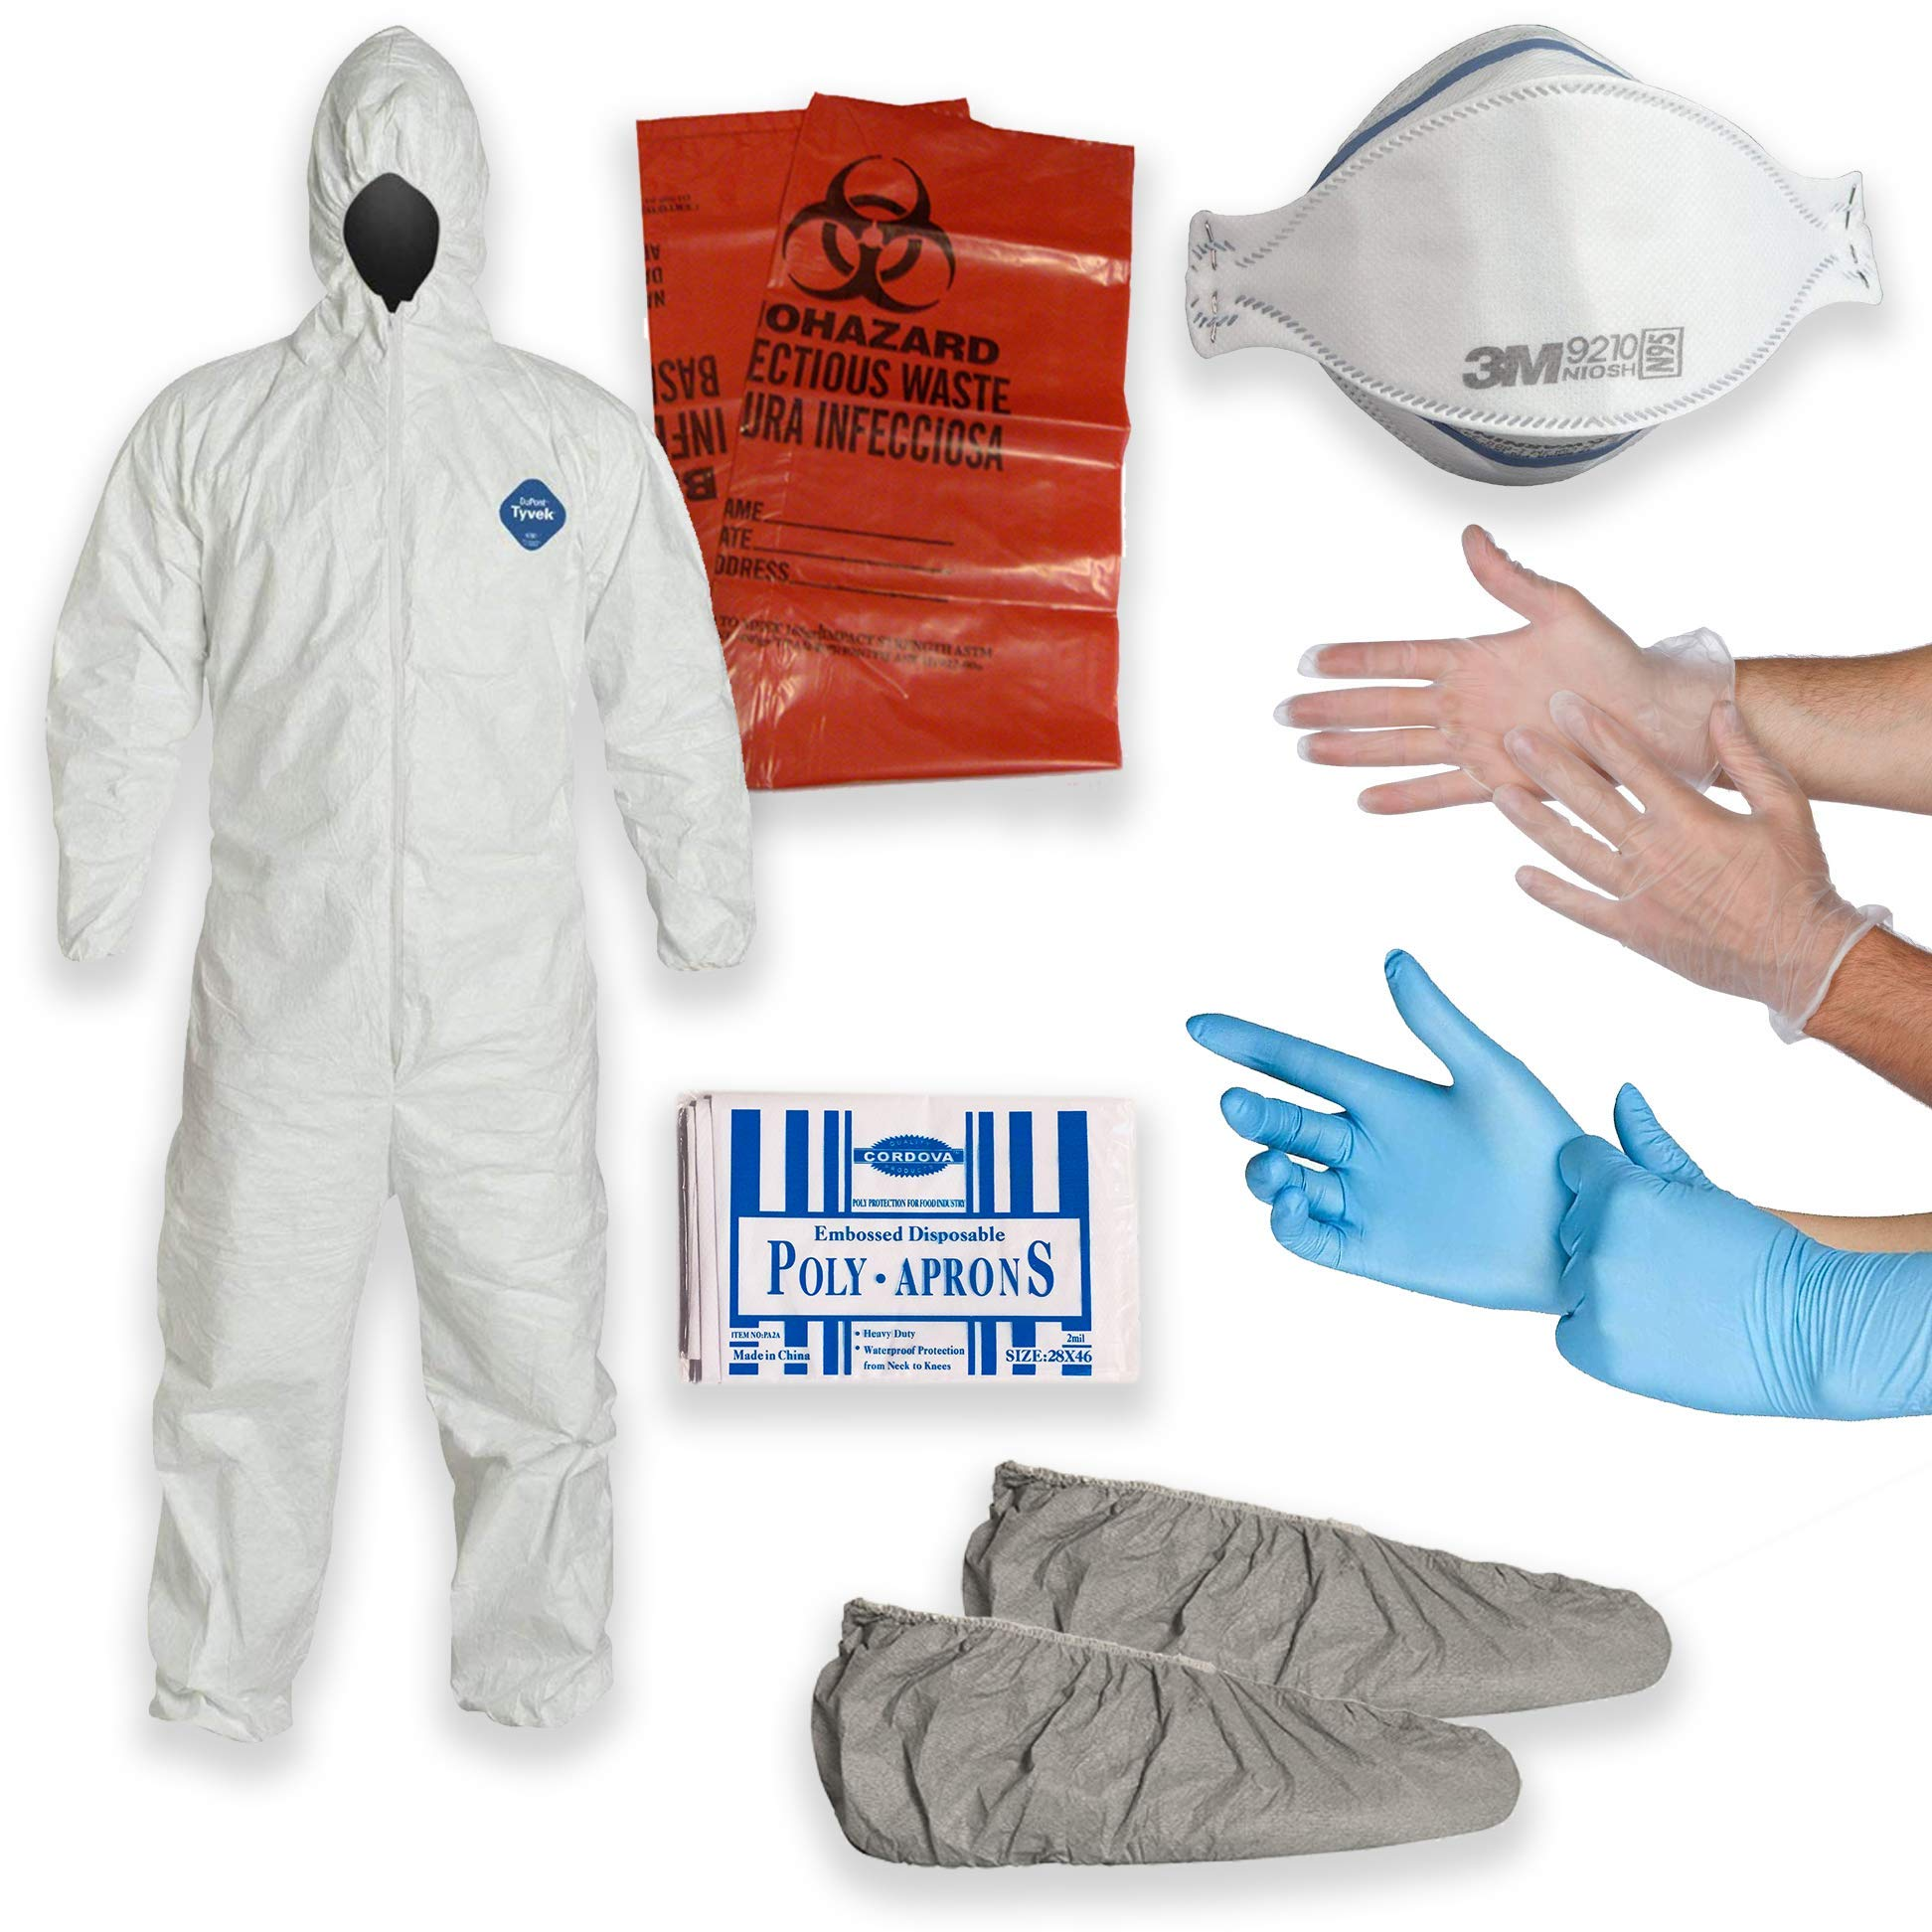 Tyvek Multipurpose Cleanup Kit: Large Tyvek TY127 Coverall Suit, Shoe Covers, 3M 9210 N95 Respirator Mask, Polyethylene Apron, 2 Pair of Protective Gloves, Biohazard Disposal Bag